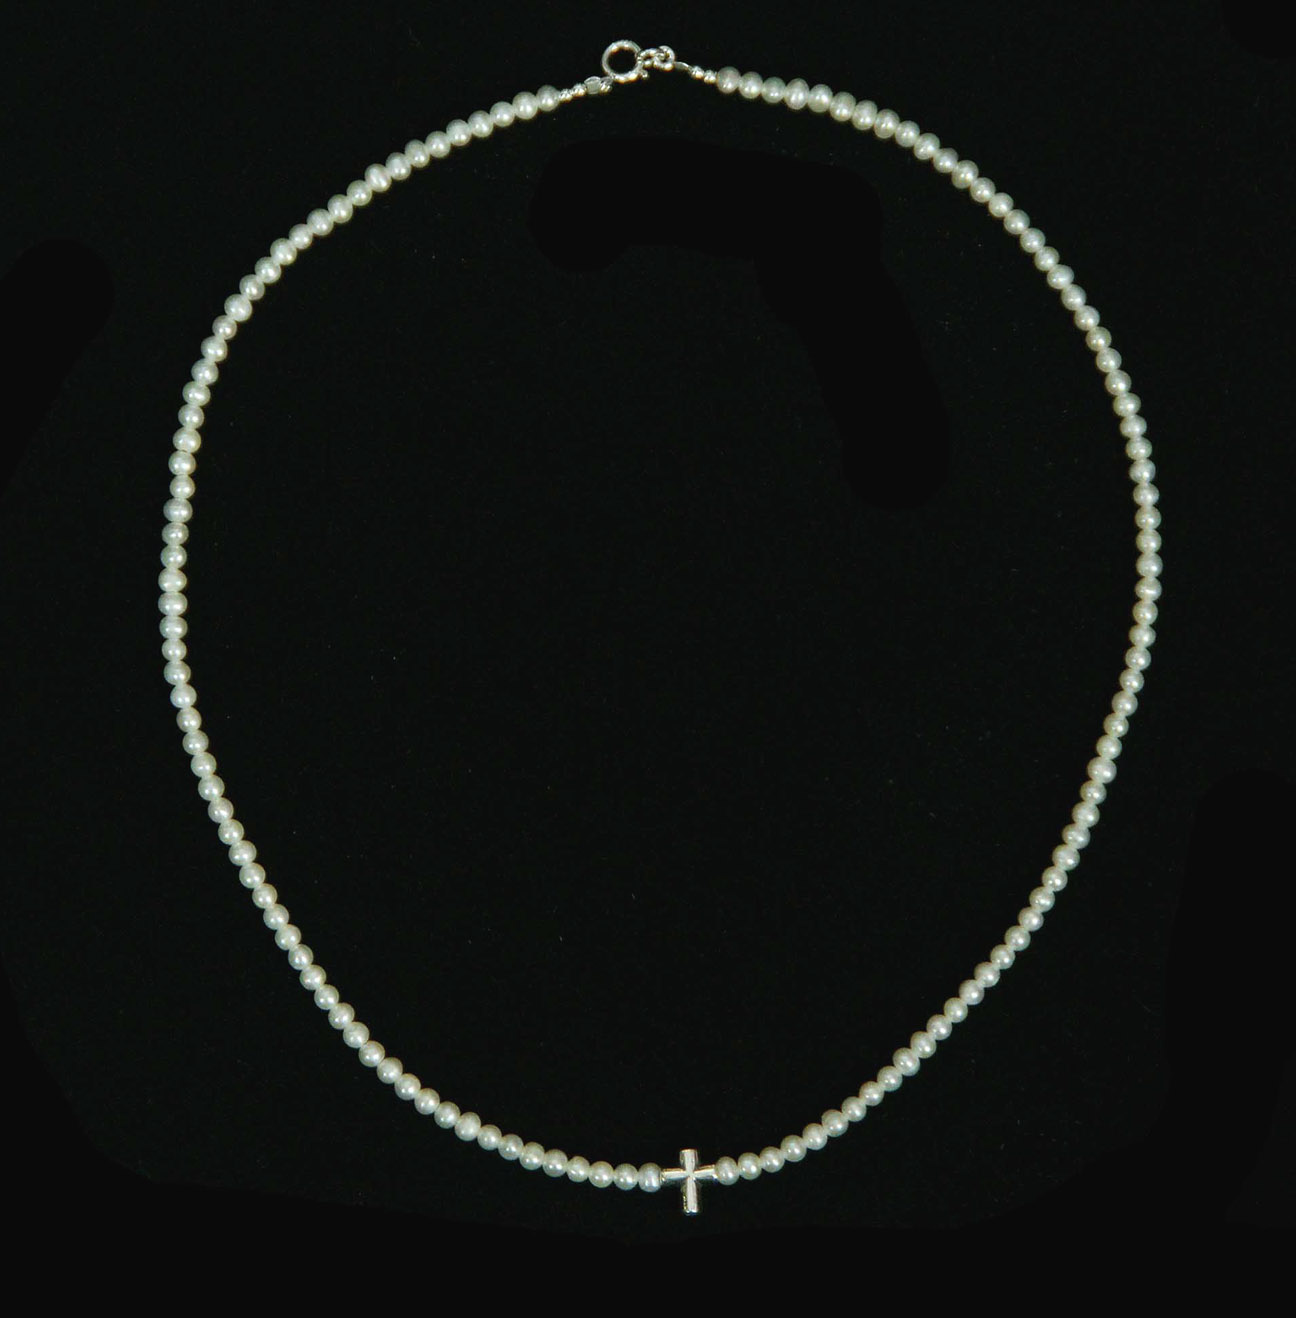 TINY PEARLS - Pearl Necklace for Girls ia9YNhTFqQ